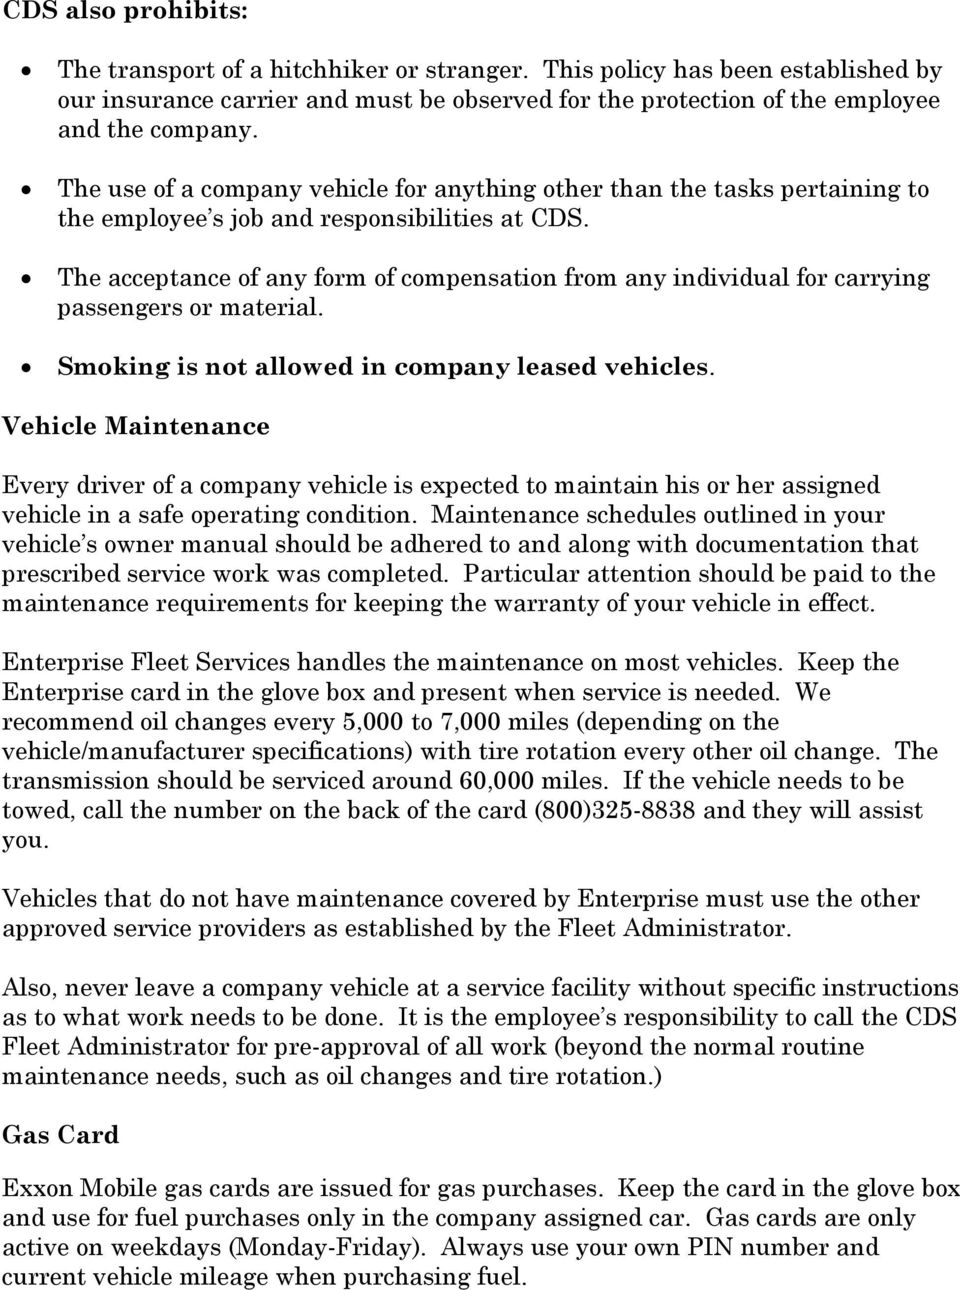 Company Vehicle Policies And Procedures Pdf Free Download